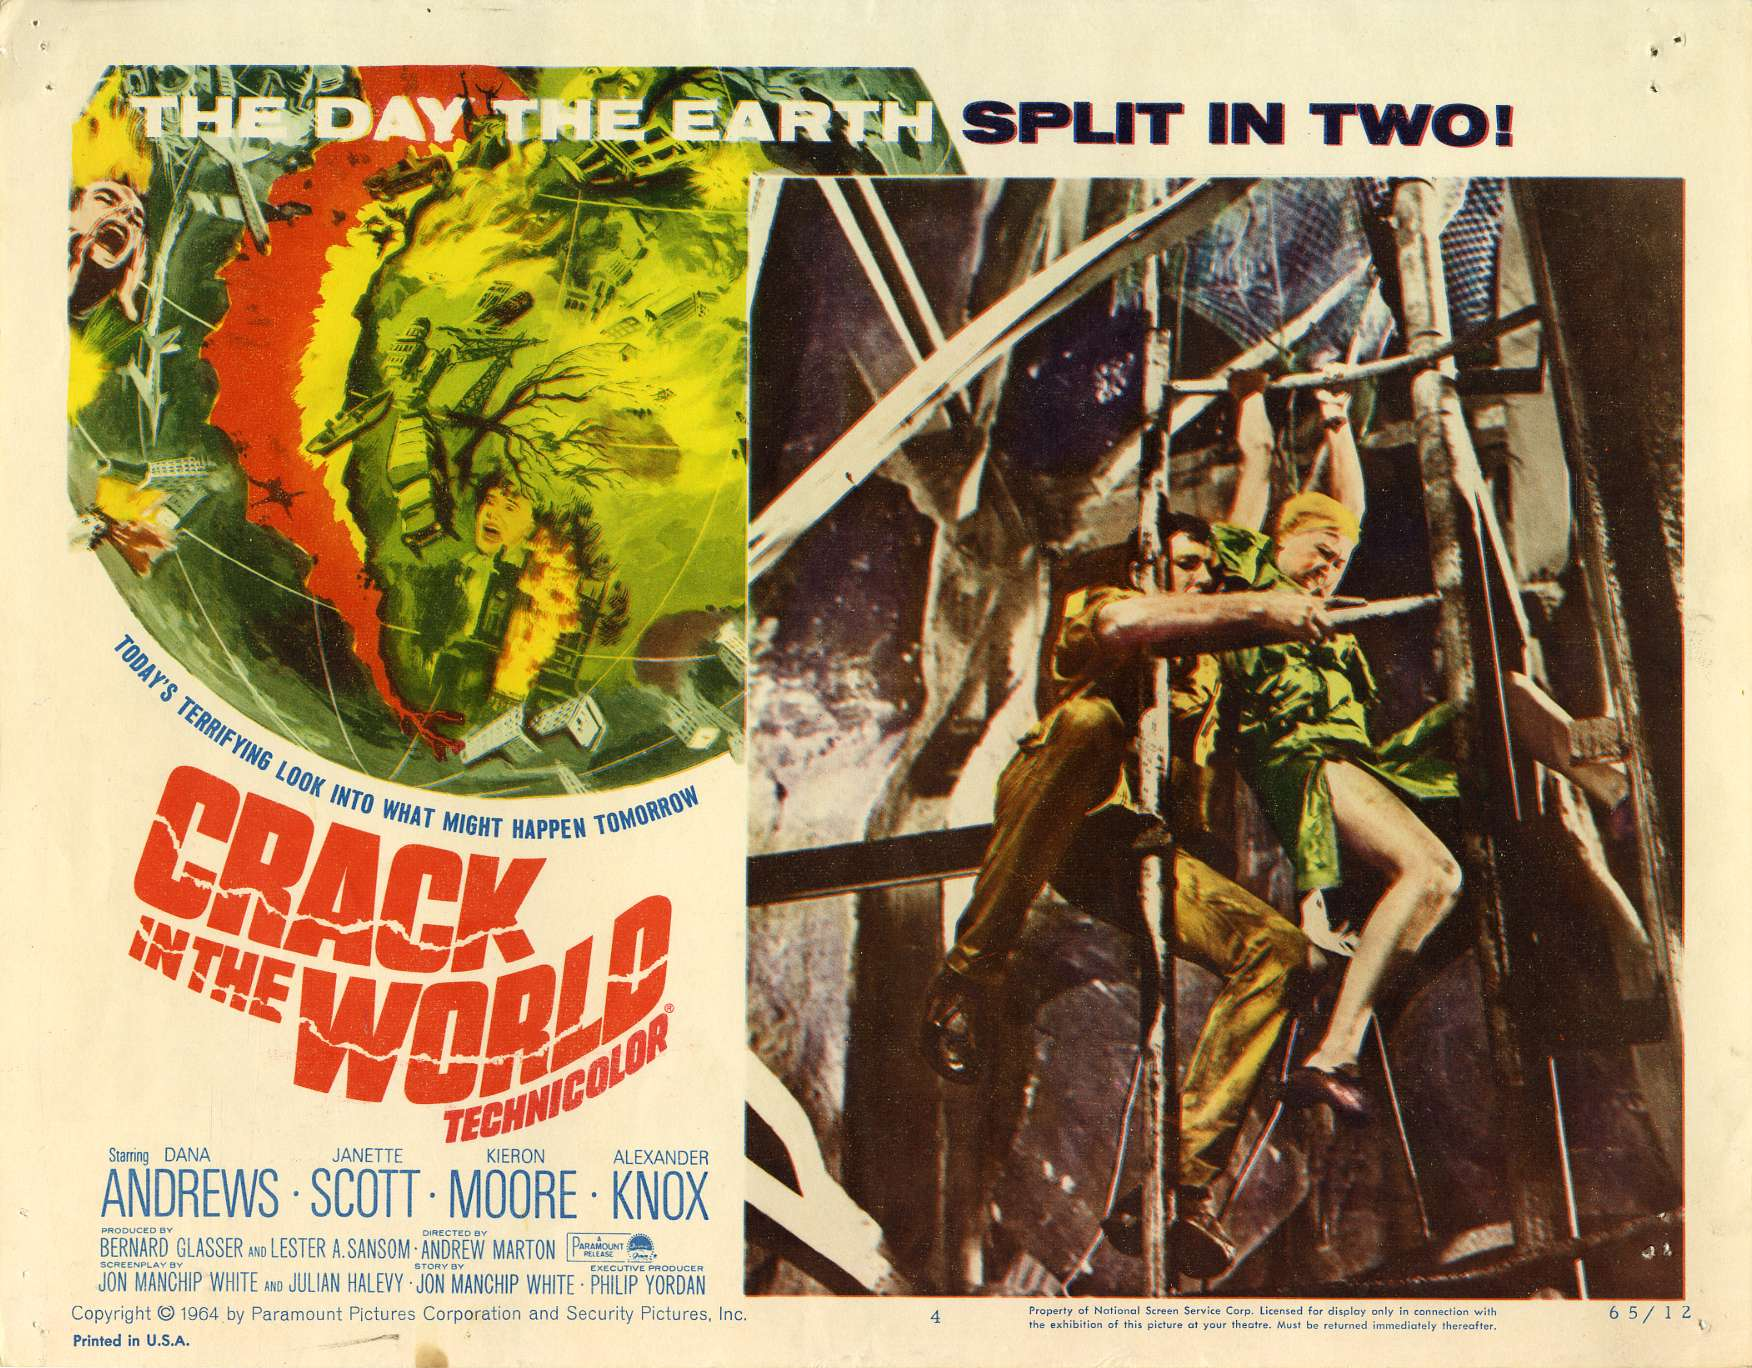 It's the last thing we need. 1965 science adventure Crack in the World imagines a world (literally) splitting in two. 11am. https://t.co/cJ3cNxRqWk